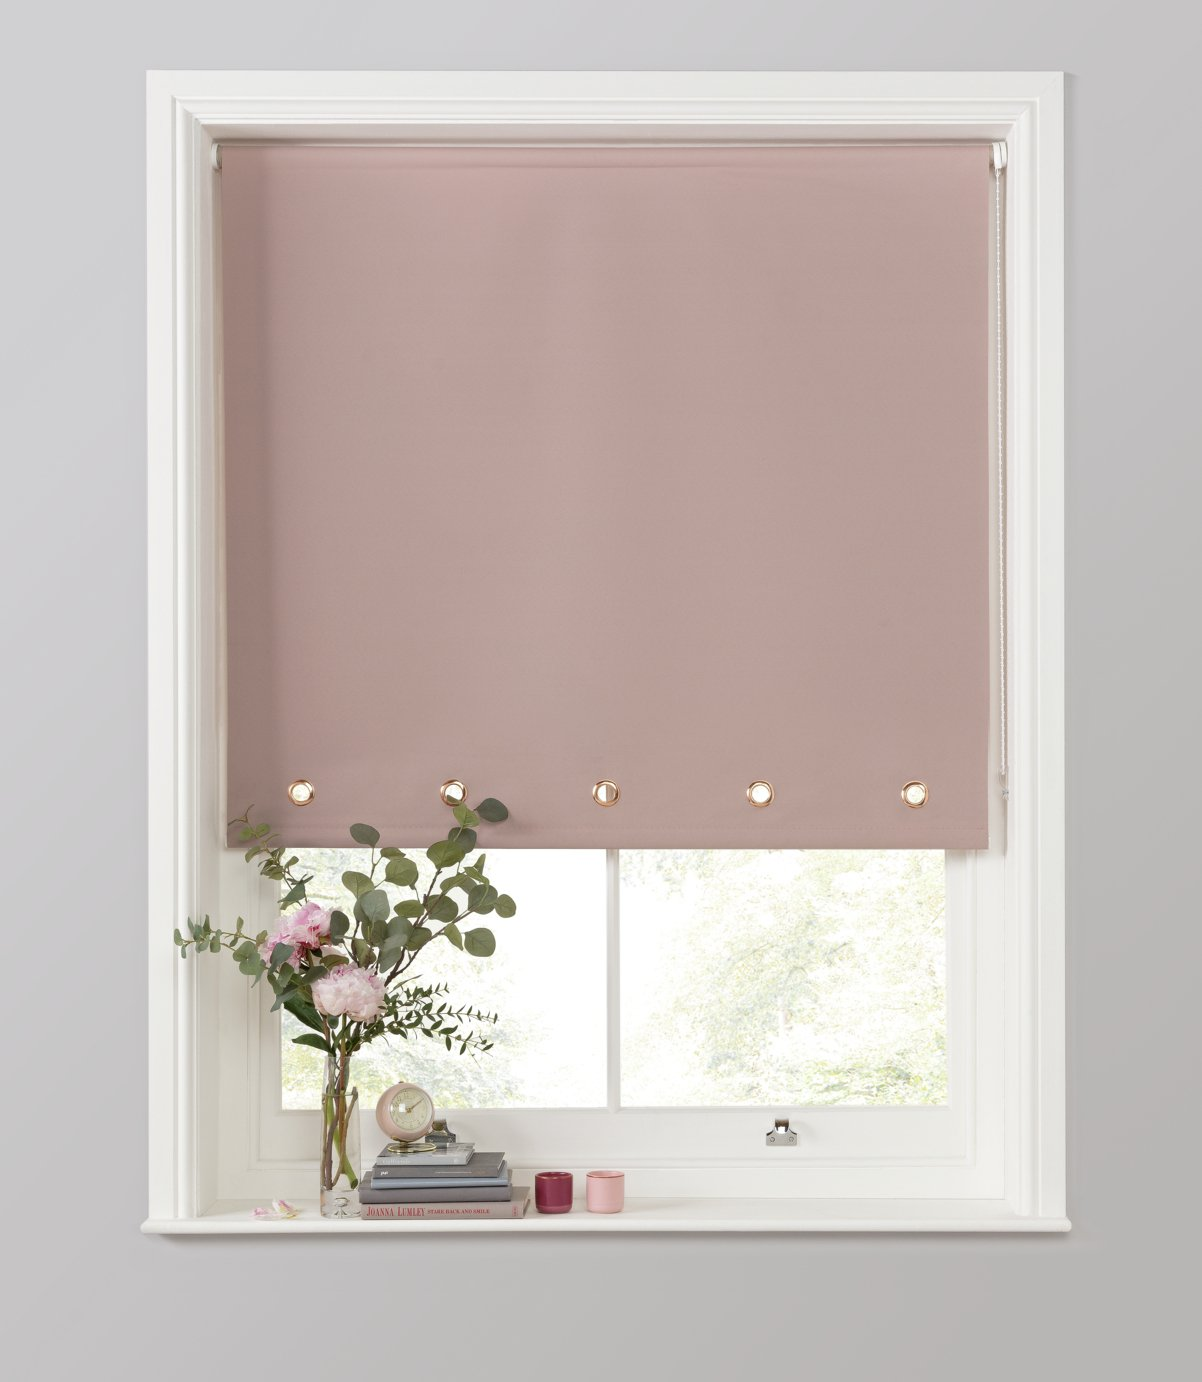 Argos Home Eyelet Daylight Roller Blind - 3ft - Blush